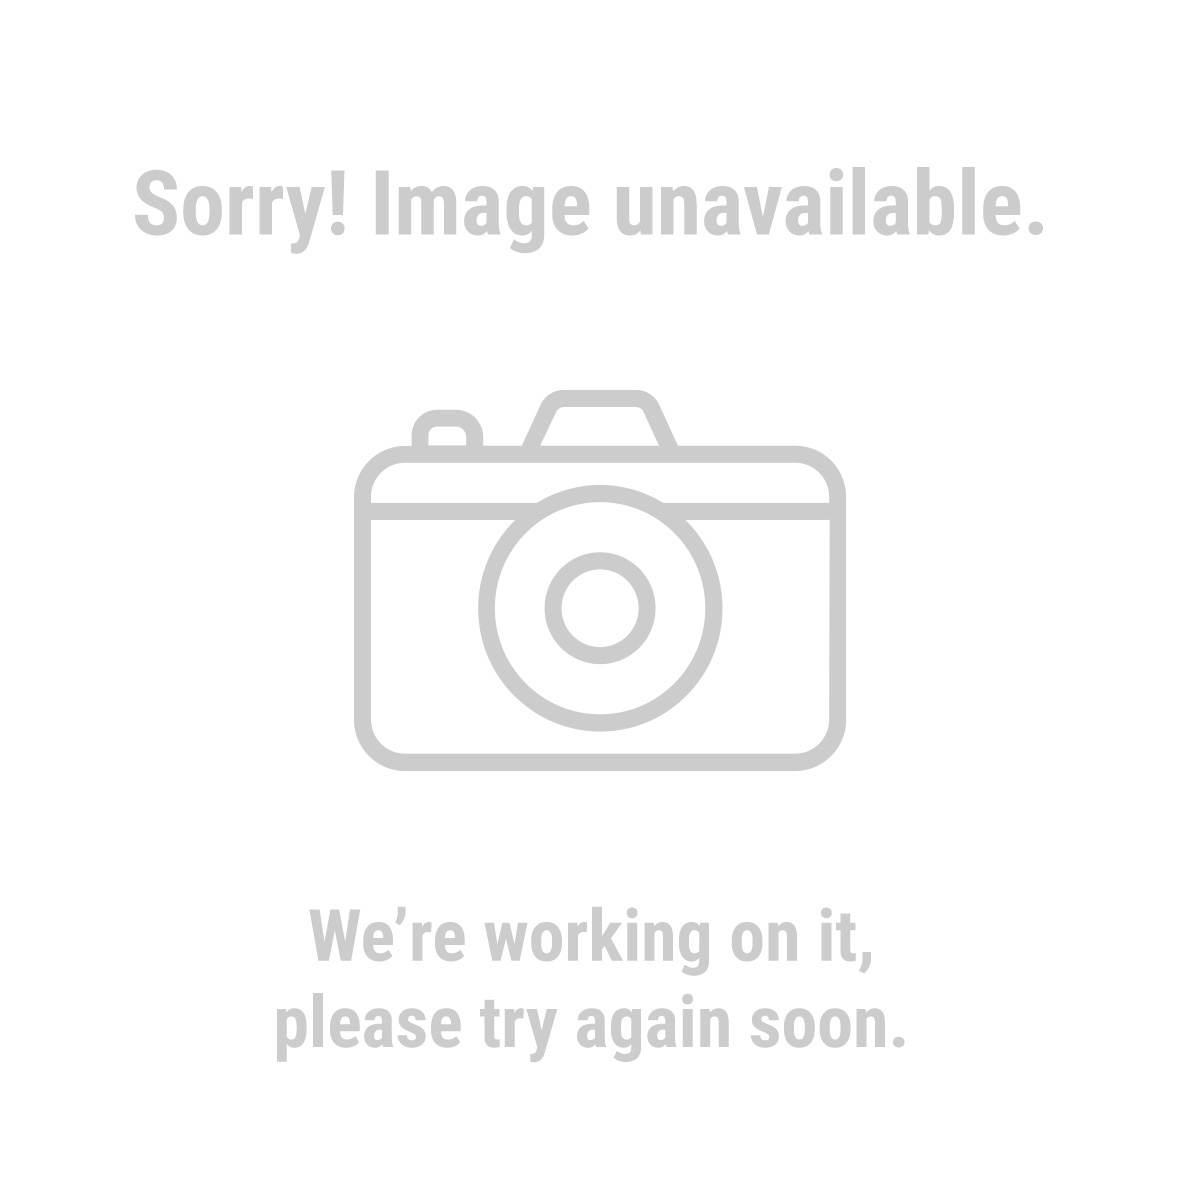 US General Pro 95272 700 lbs. Capacity Five Drawer Tool Cart